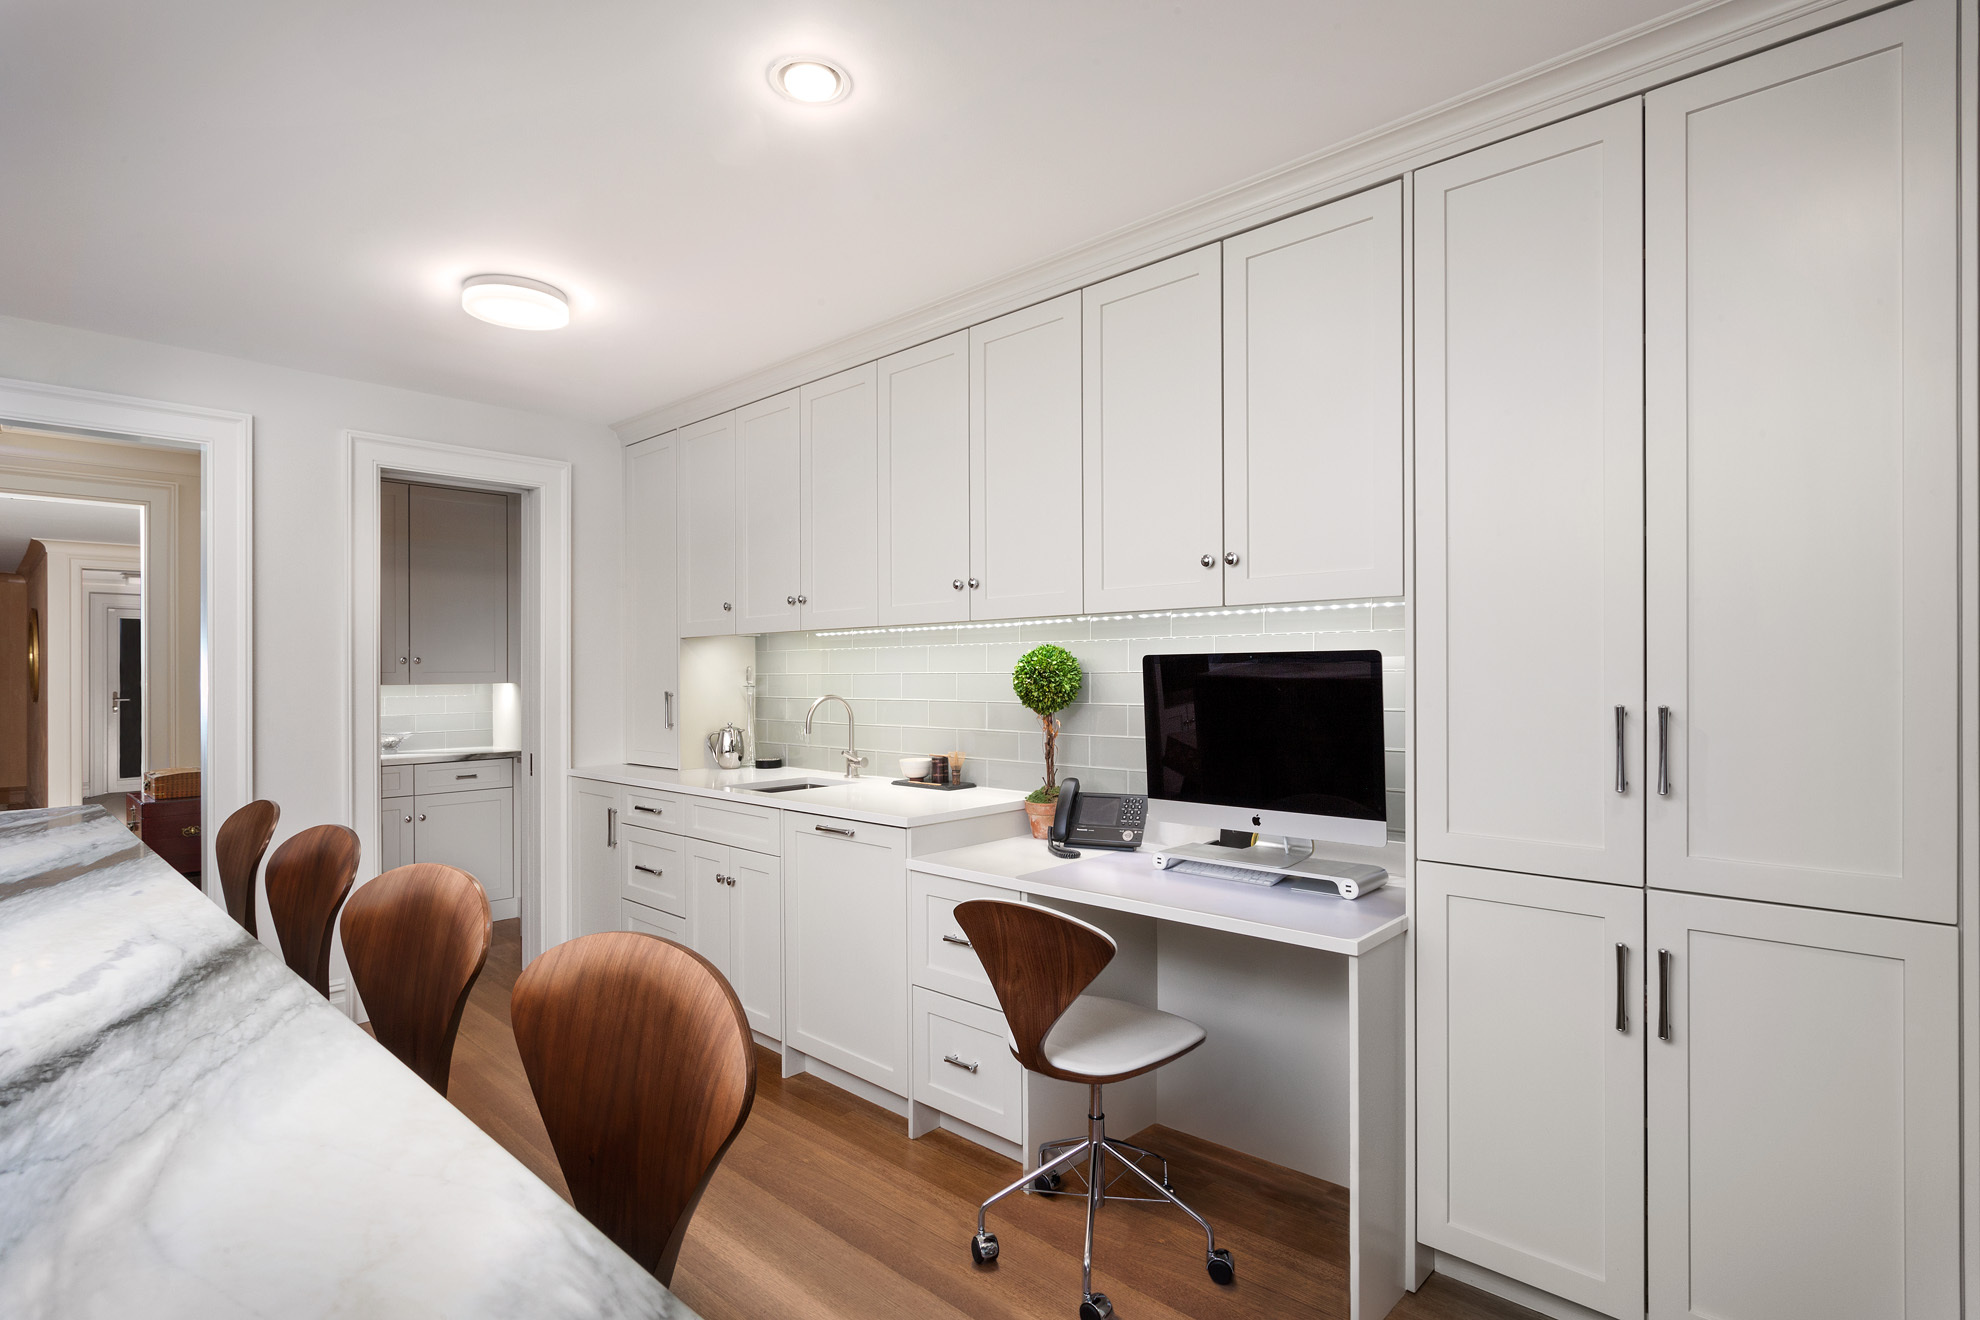 25 West 88th Street Upper West Side New York NY 10024